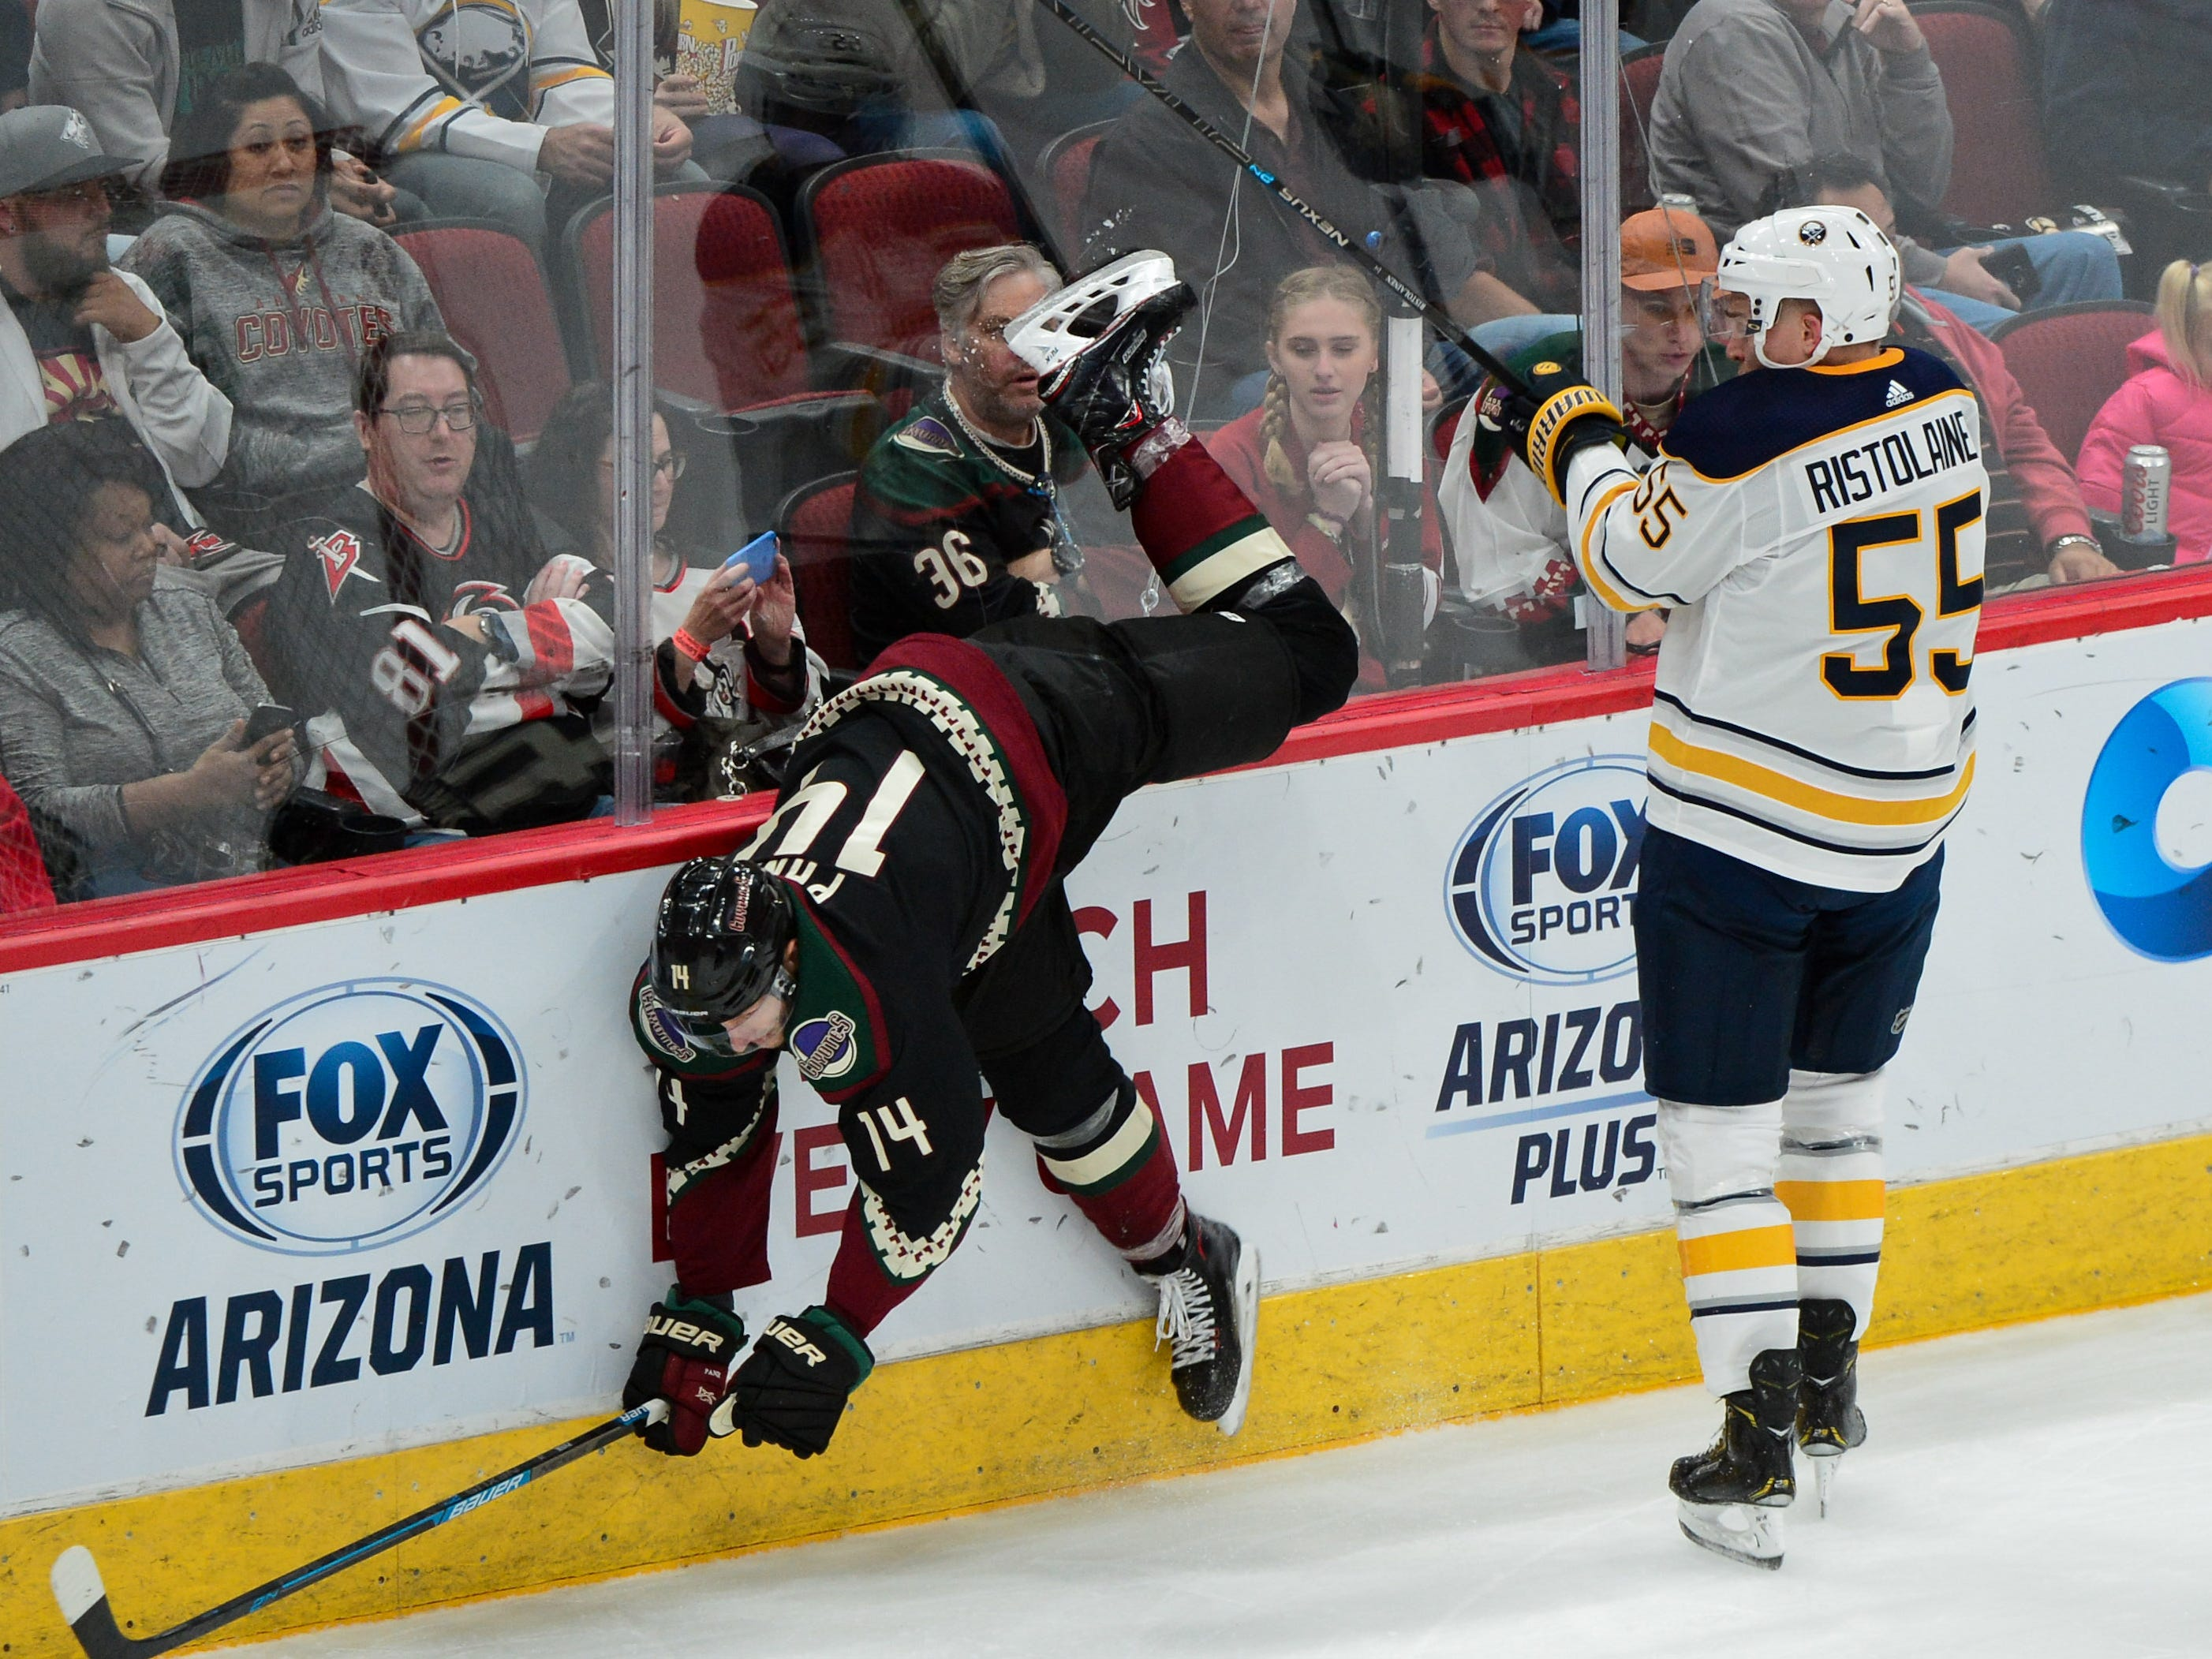 Oct 13, 2018; Glendale, AZ, USA; Buffalo Sabres defenseman Rasmus Ristolainen (55) checks Arizona Coyotes right wing Richard Panik (14) during the second period at Gila River Arena.